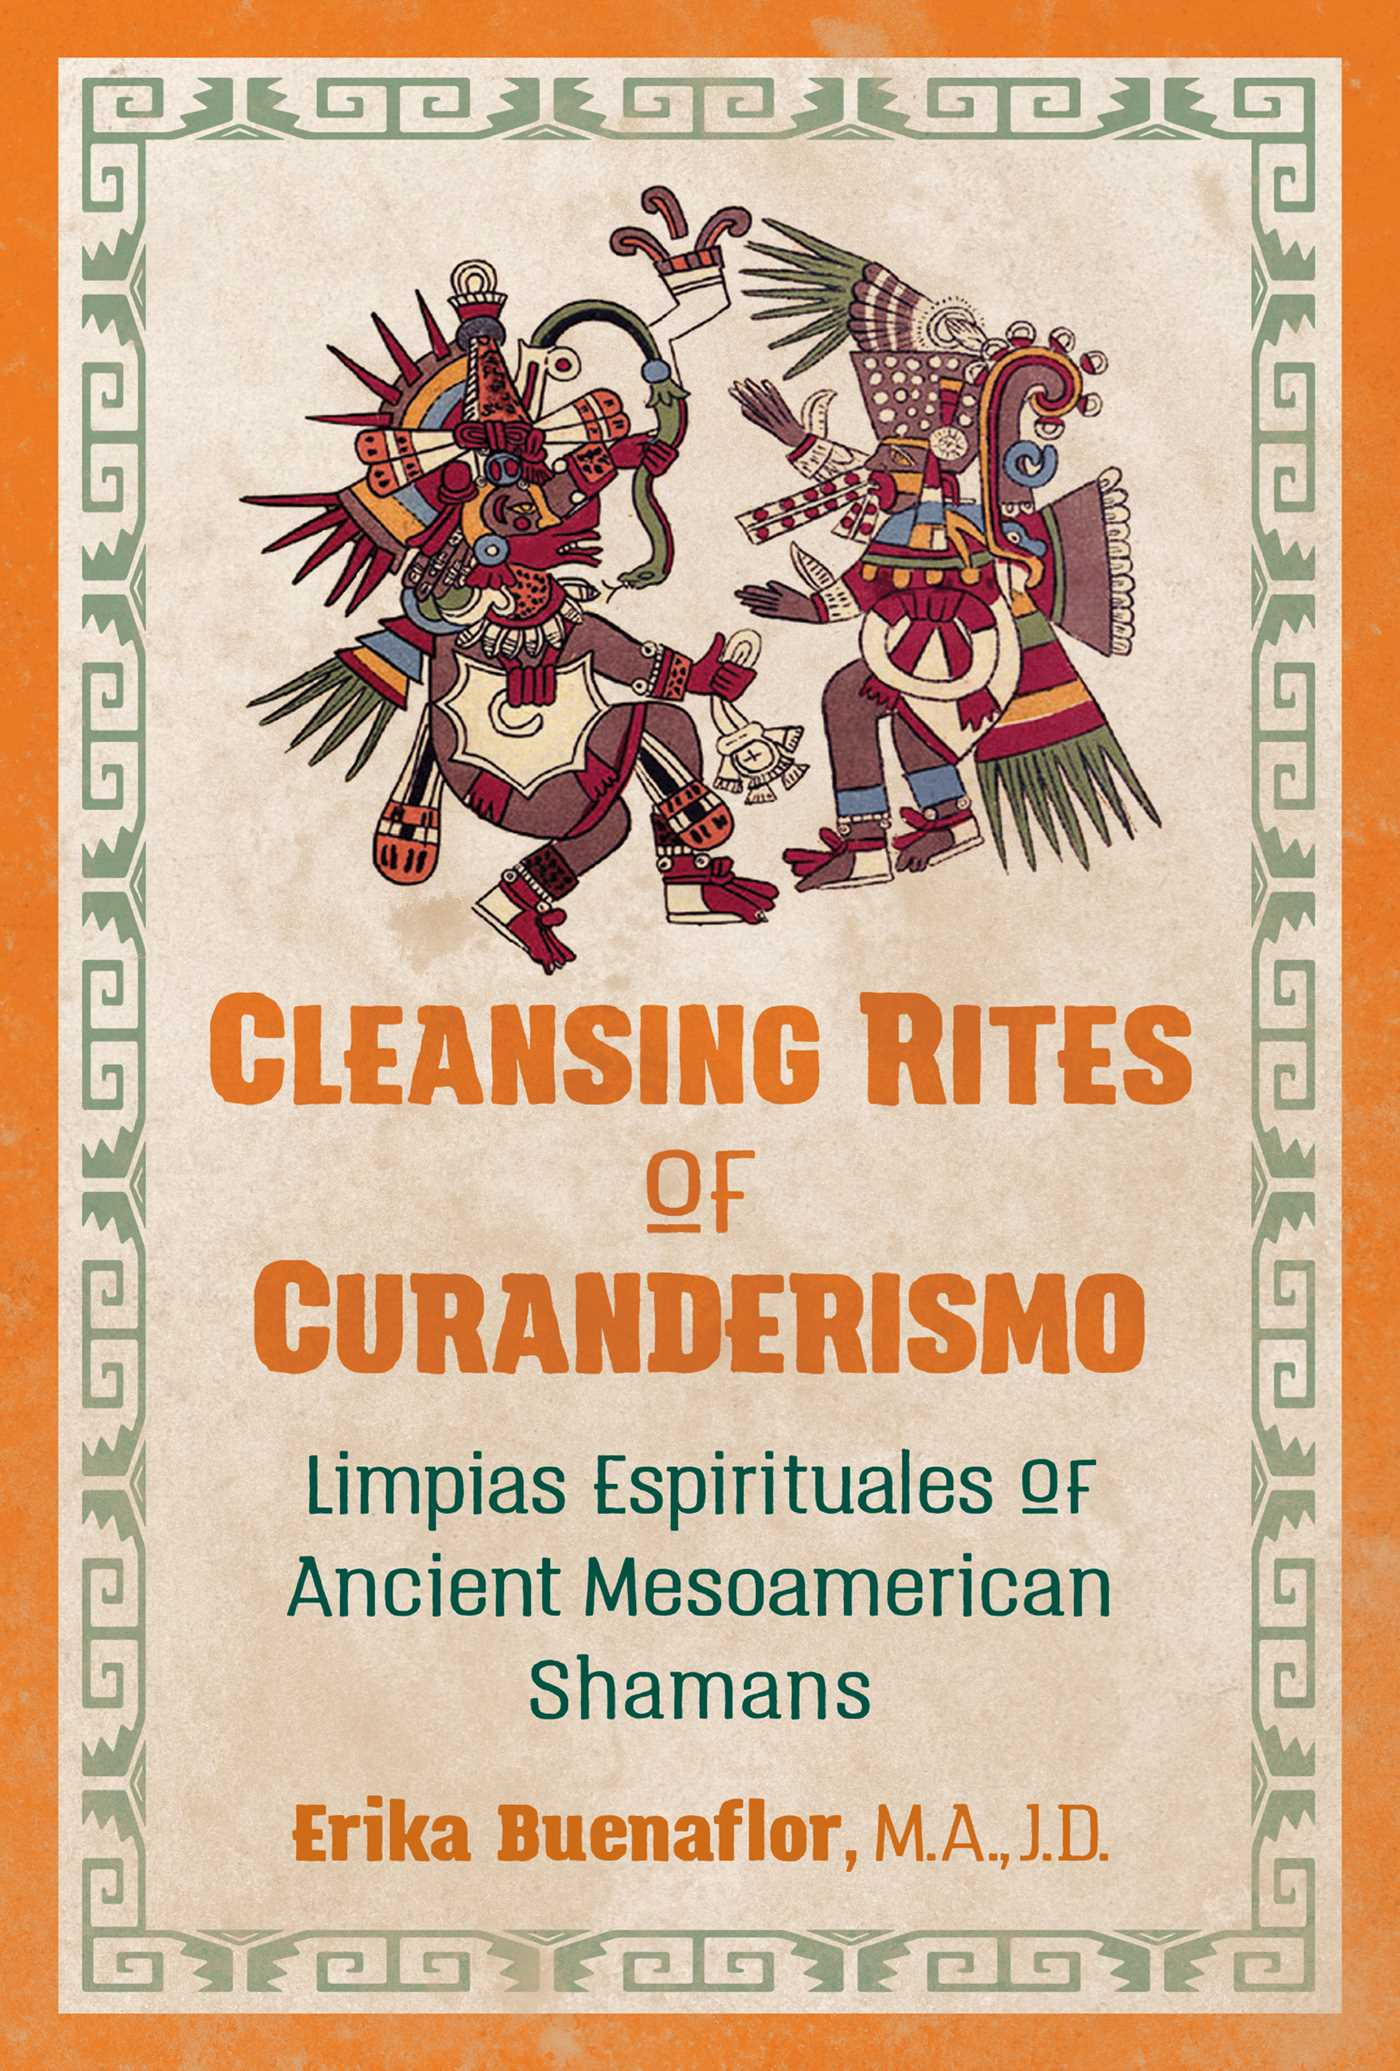 Cleansing rites of curanderismo 9781591433125 hr